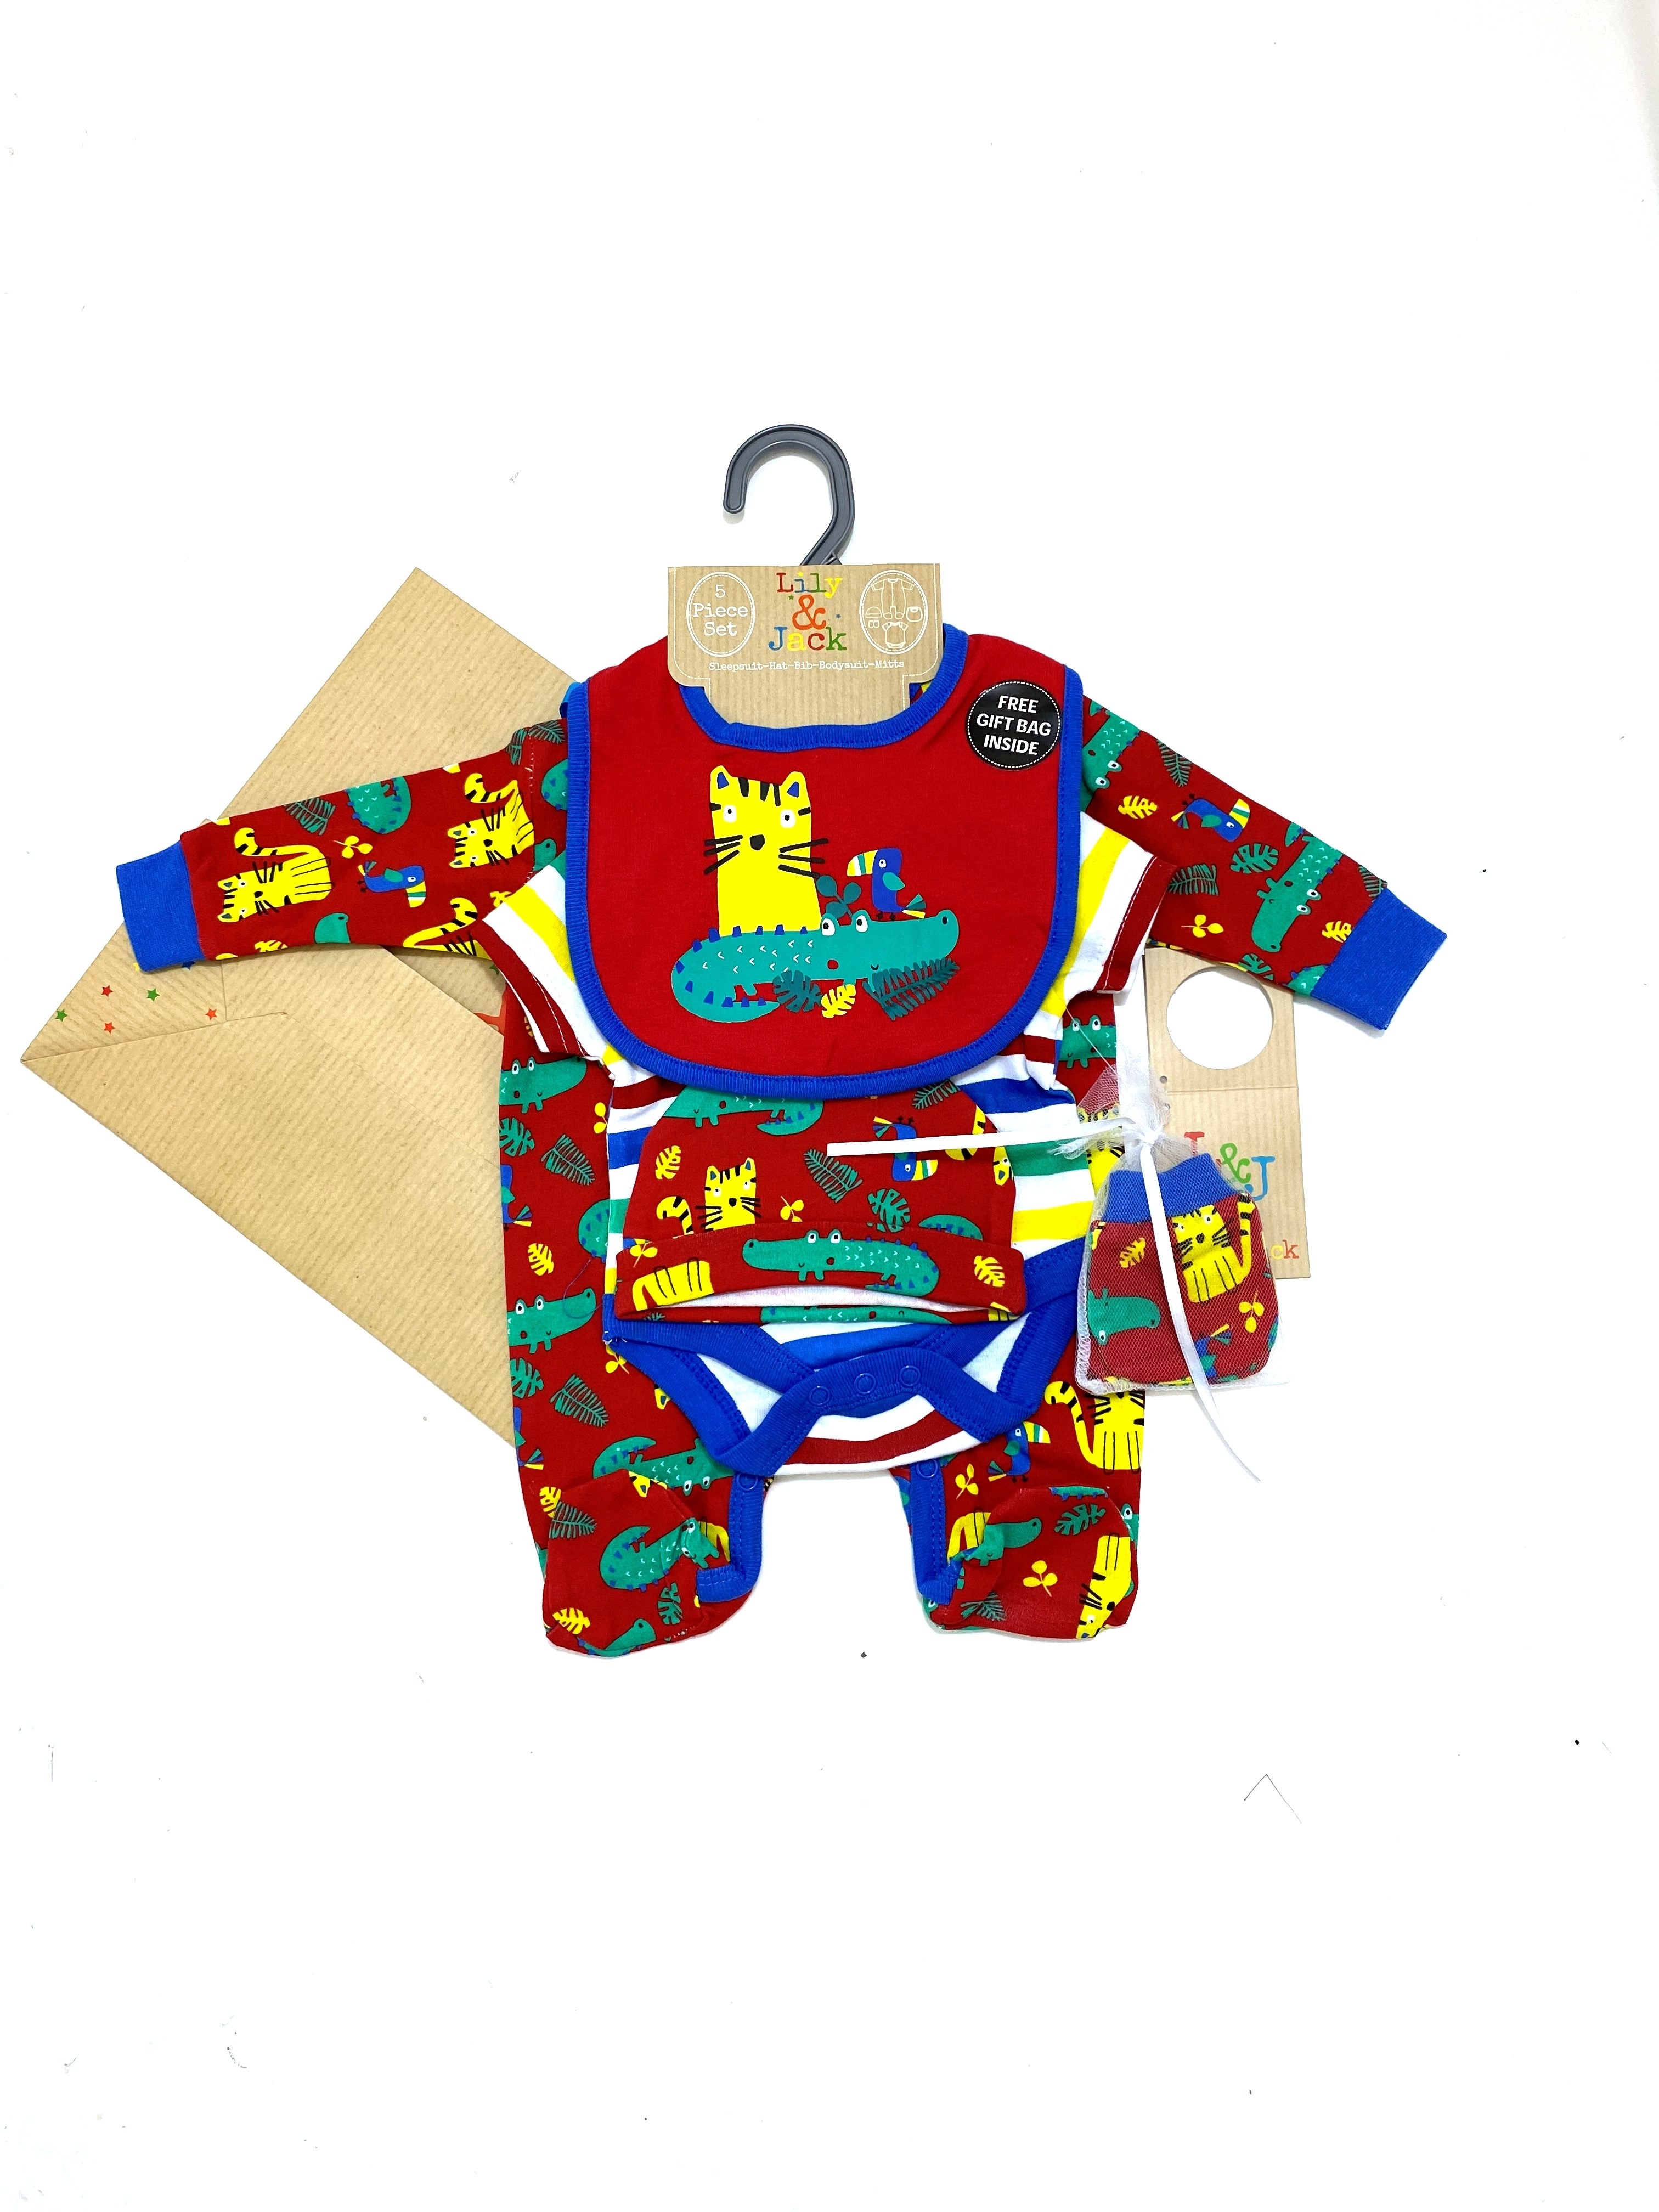 Lily & Jack 'Jungle' Baby Boys 5 Piece Set in Net Bag PACK OF 4